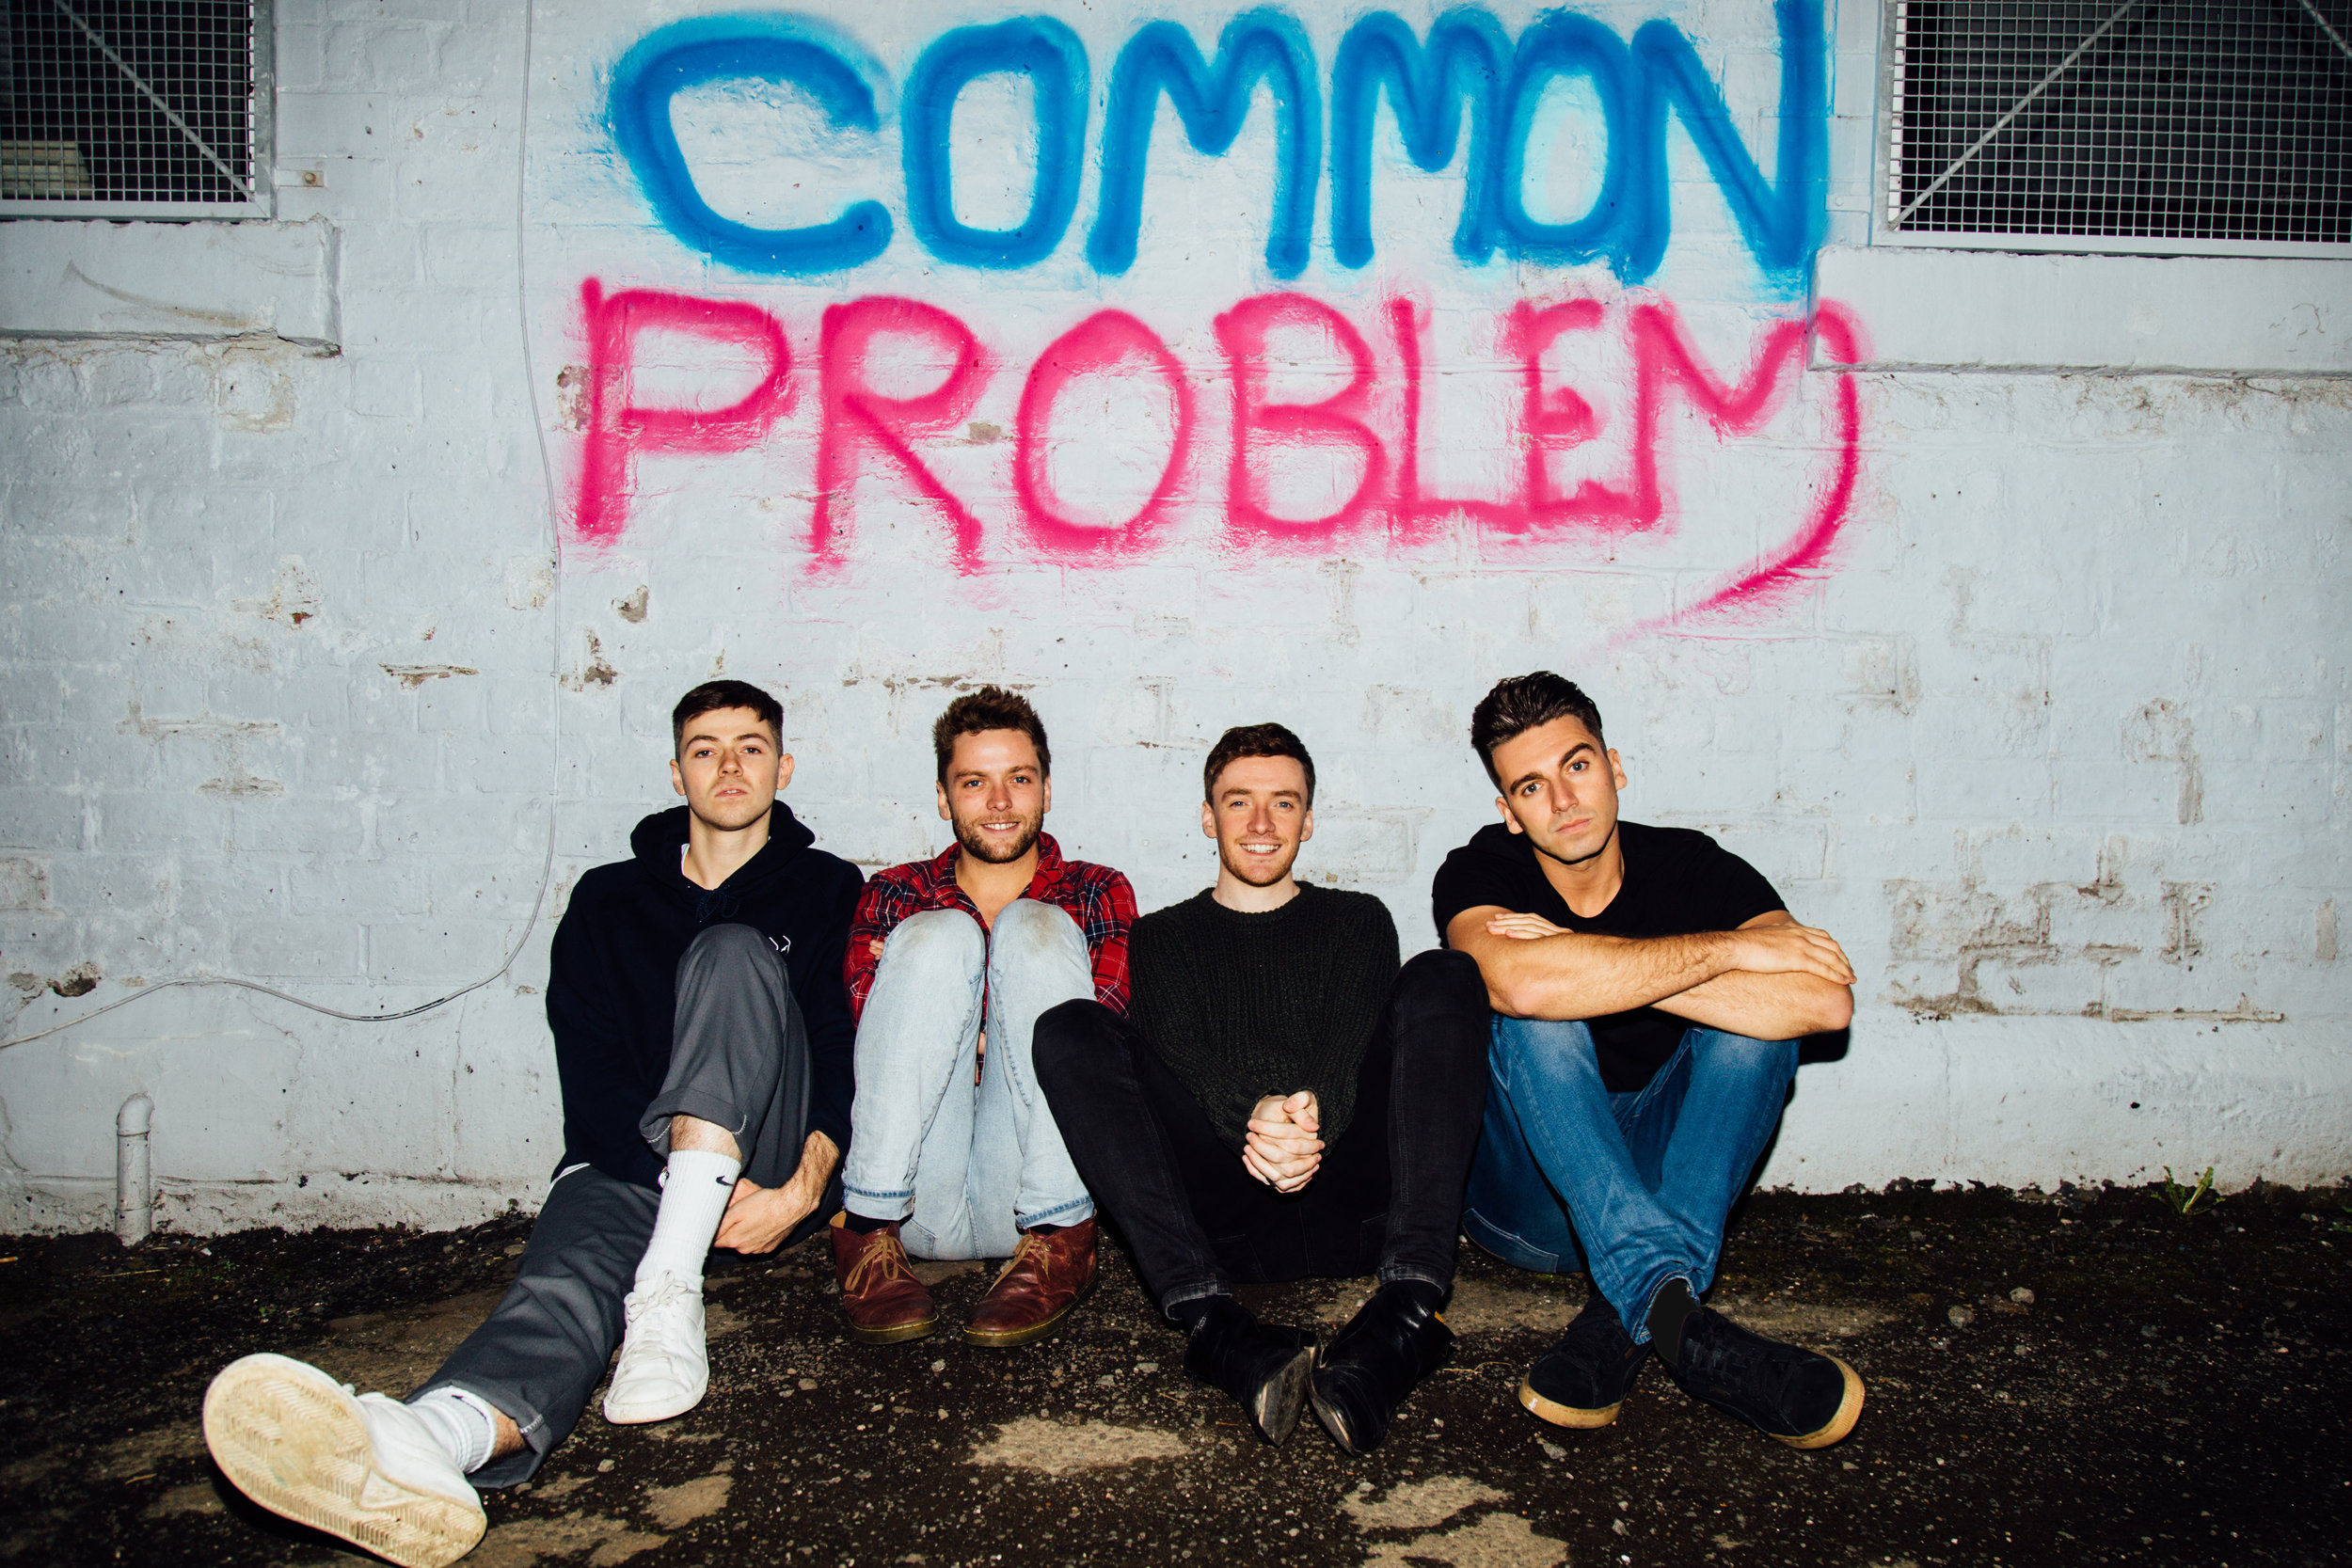 THE LAFONTAINES - COMMON PROBLEM - PROMO WORK FOR BRAND NEW ALBUM  PHOTO SOURCE: CHUFF MEDIA